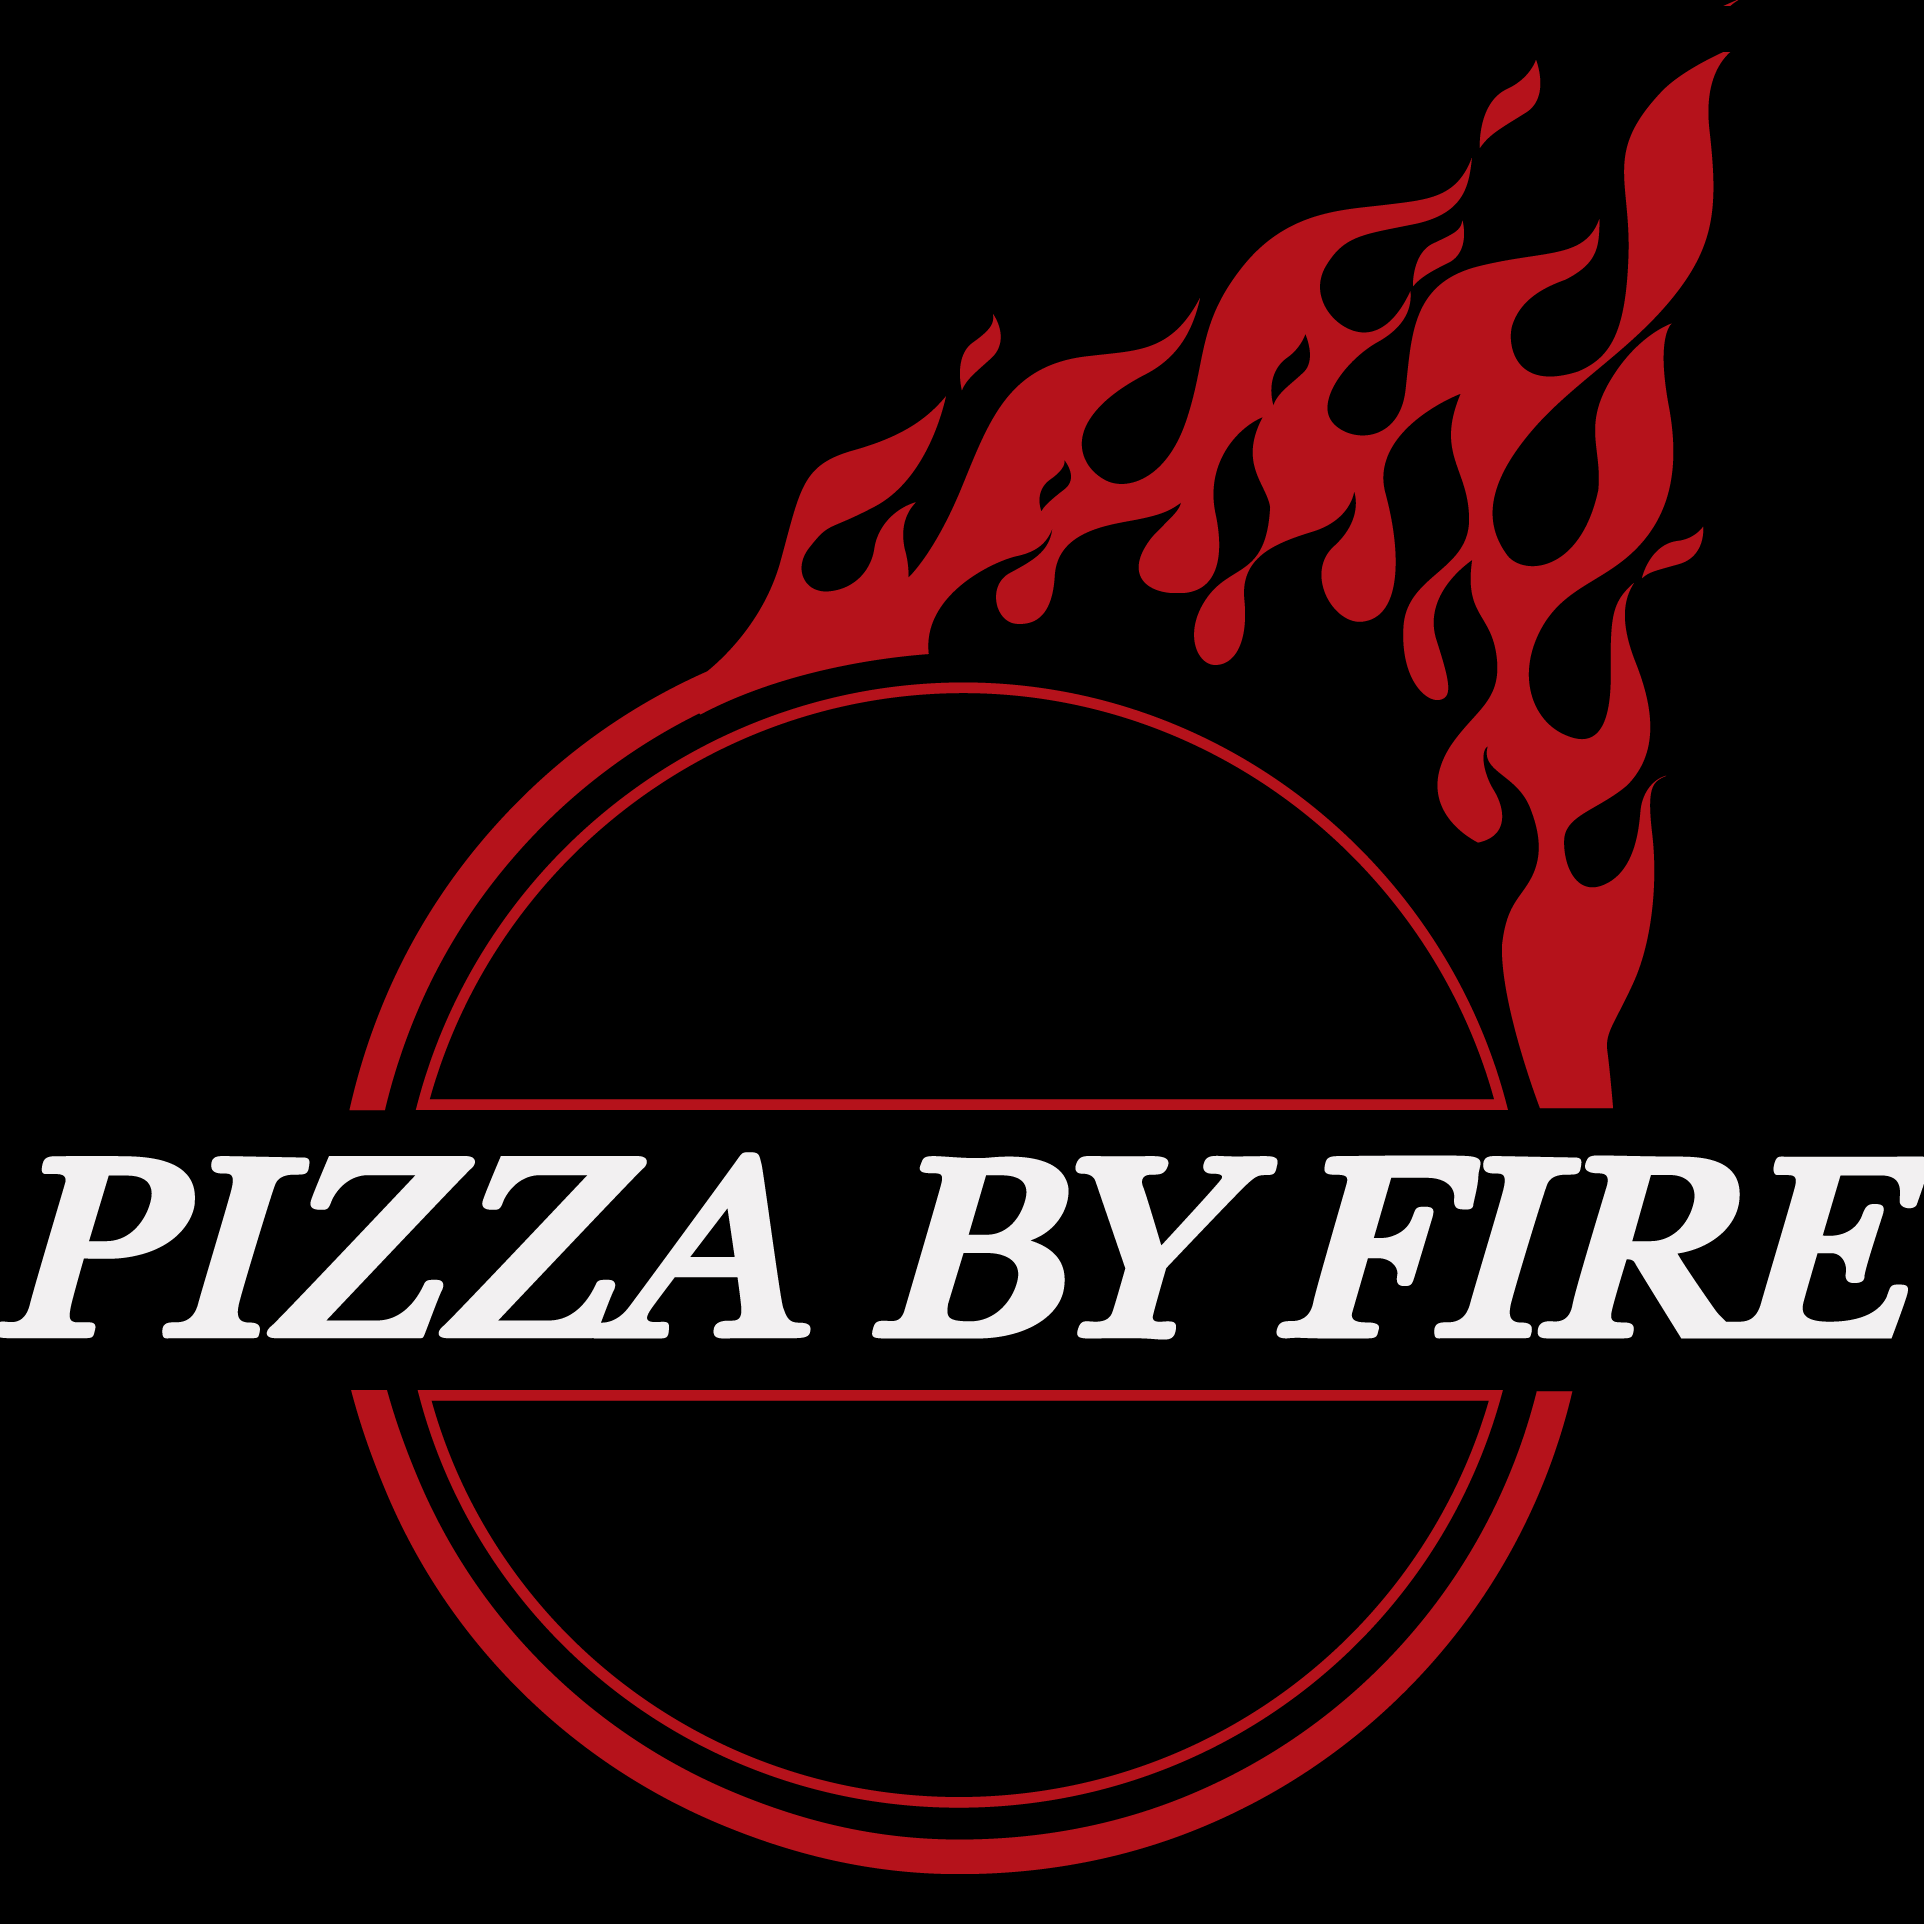 Pizza By Fire logo